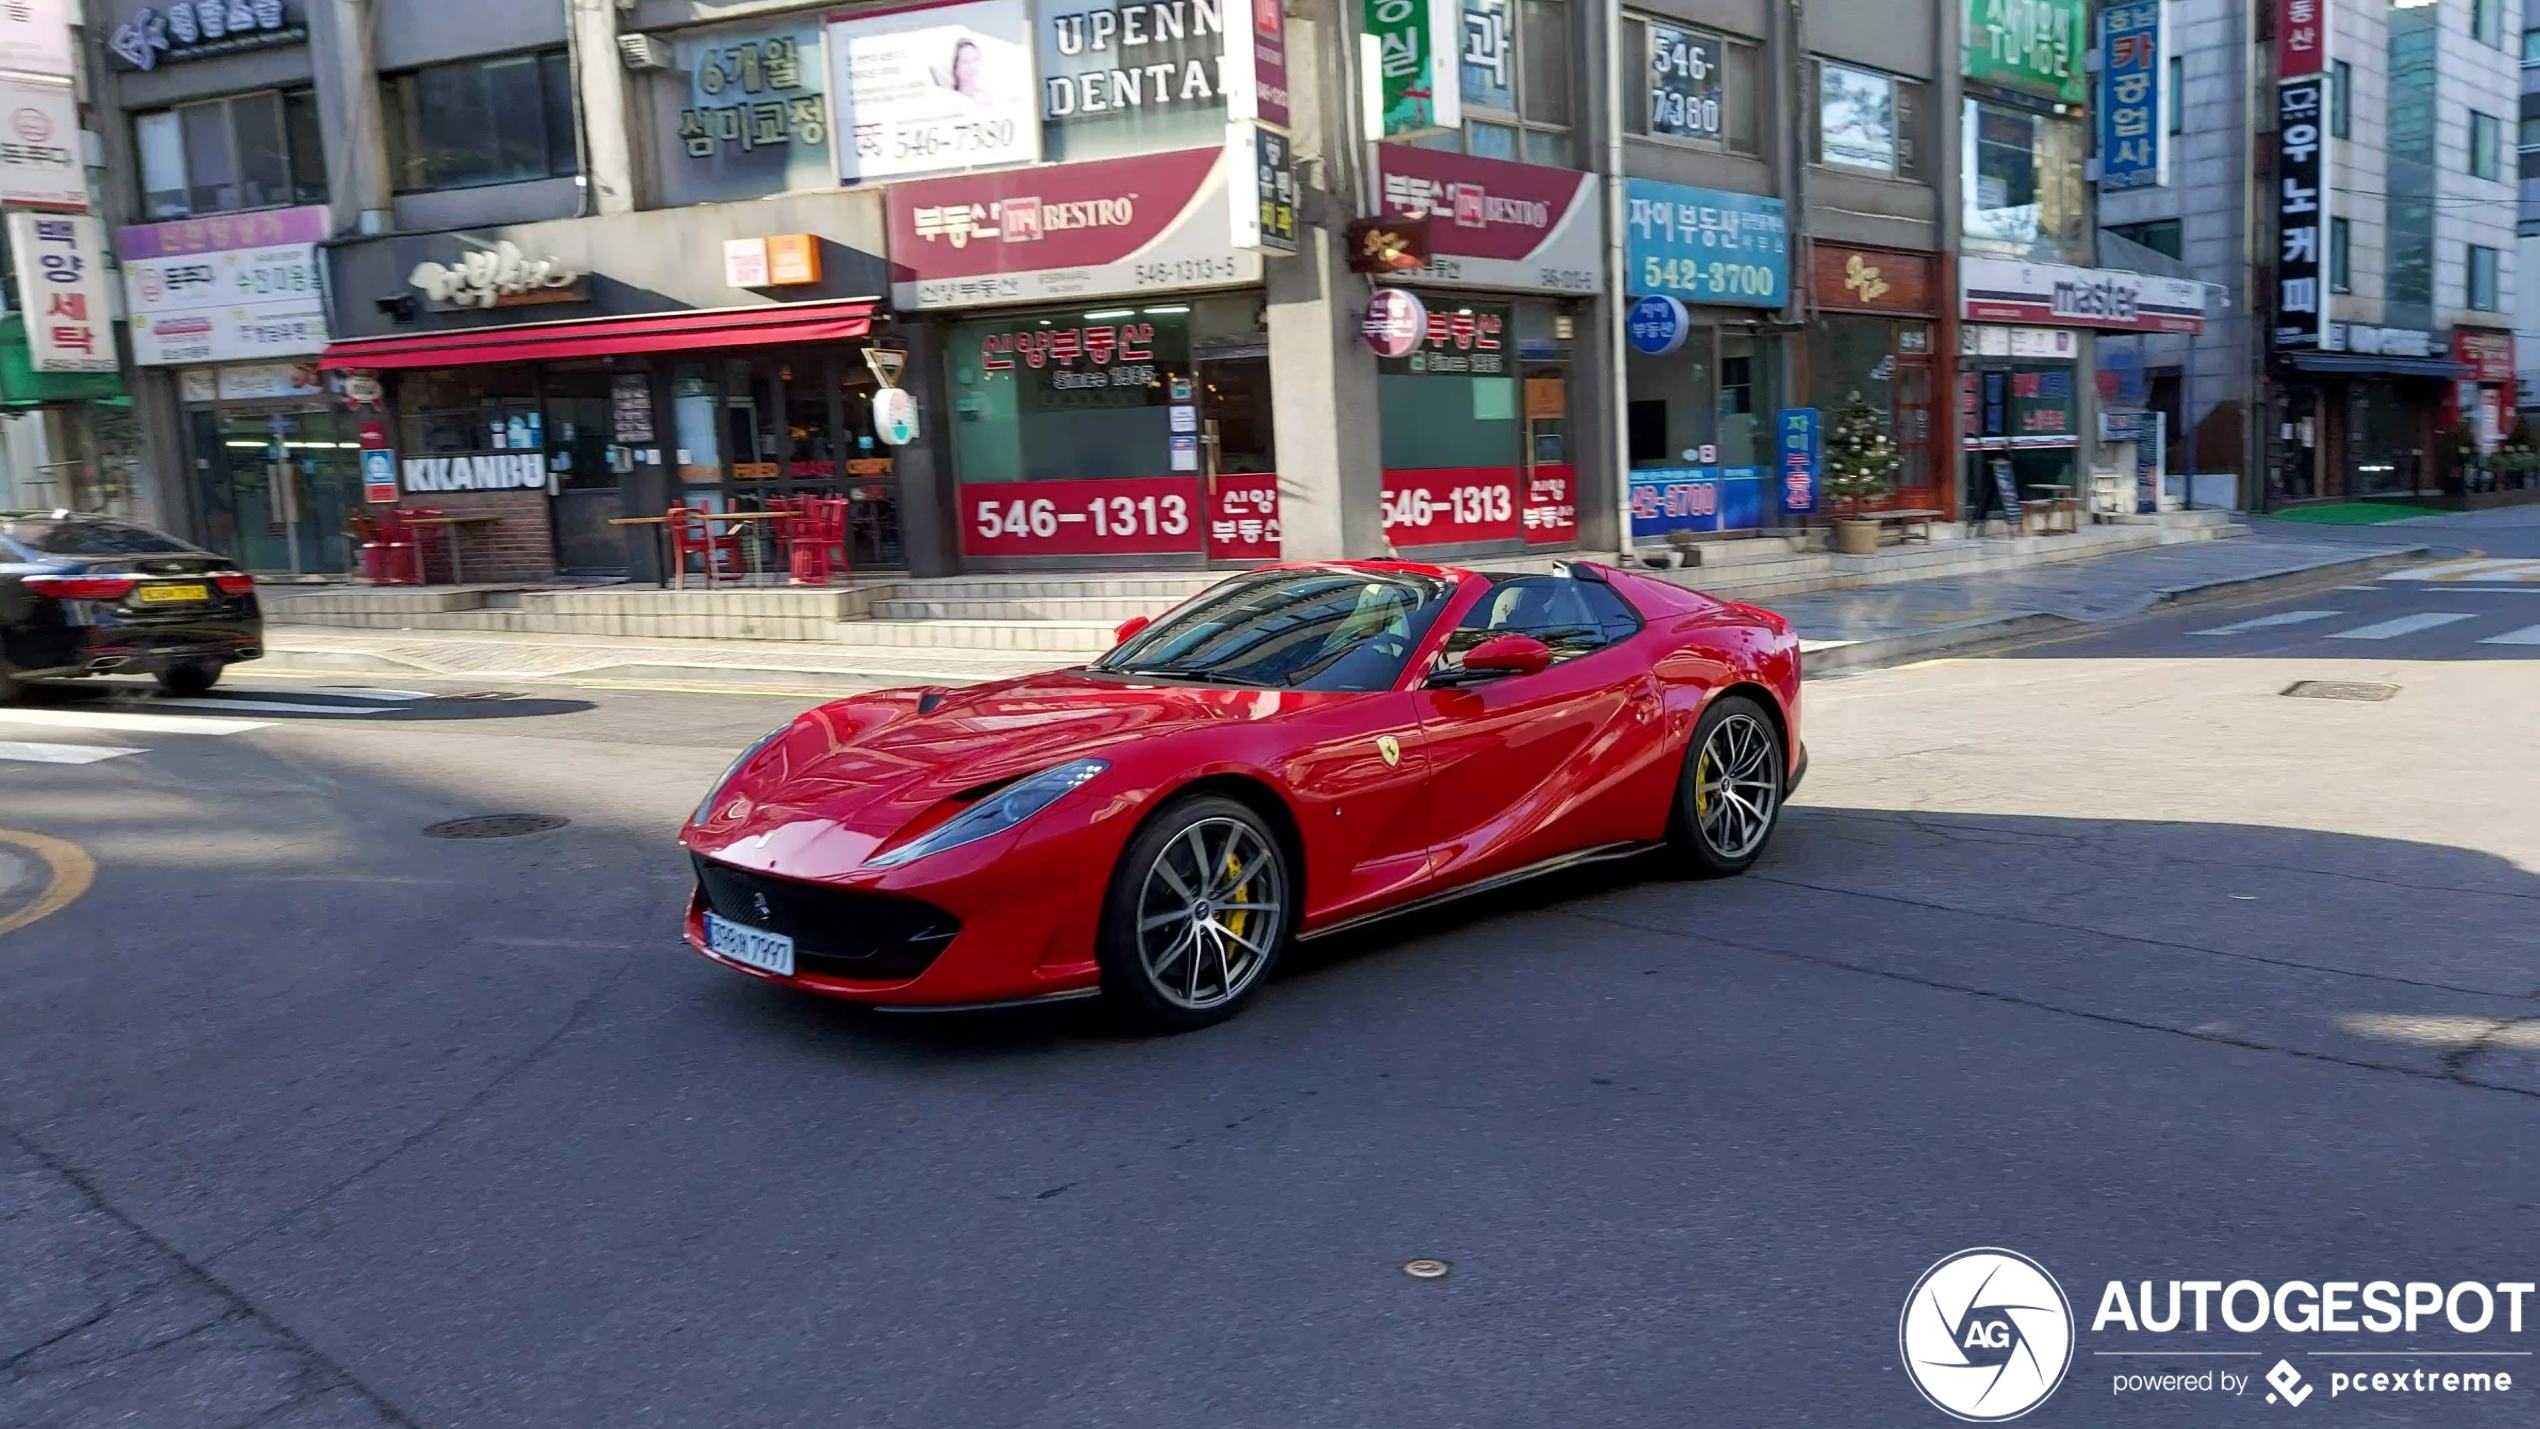 Exclusive cars also just drive in Seoul